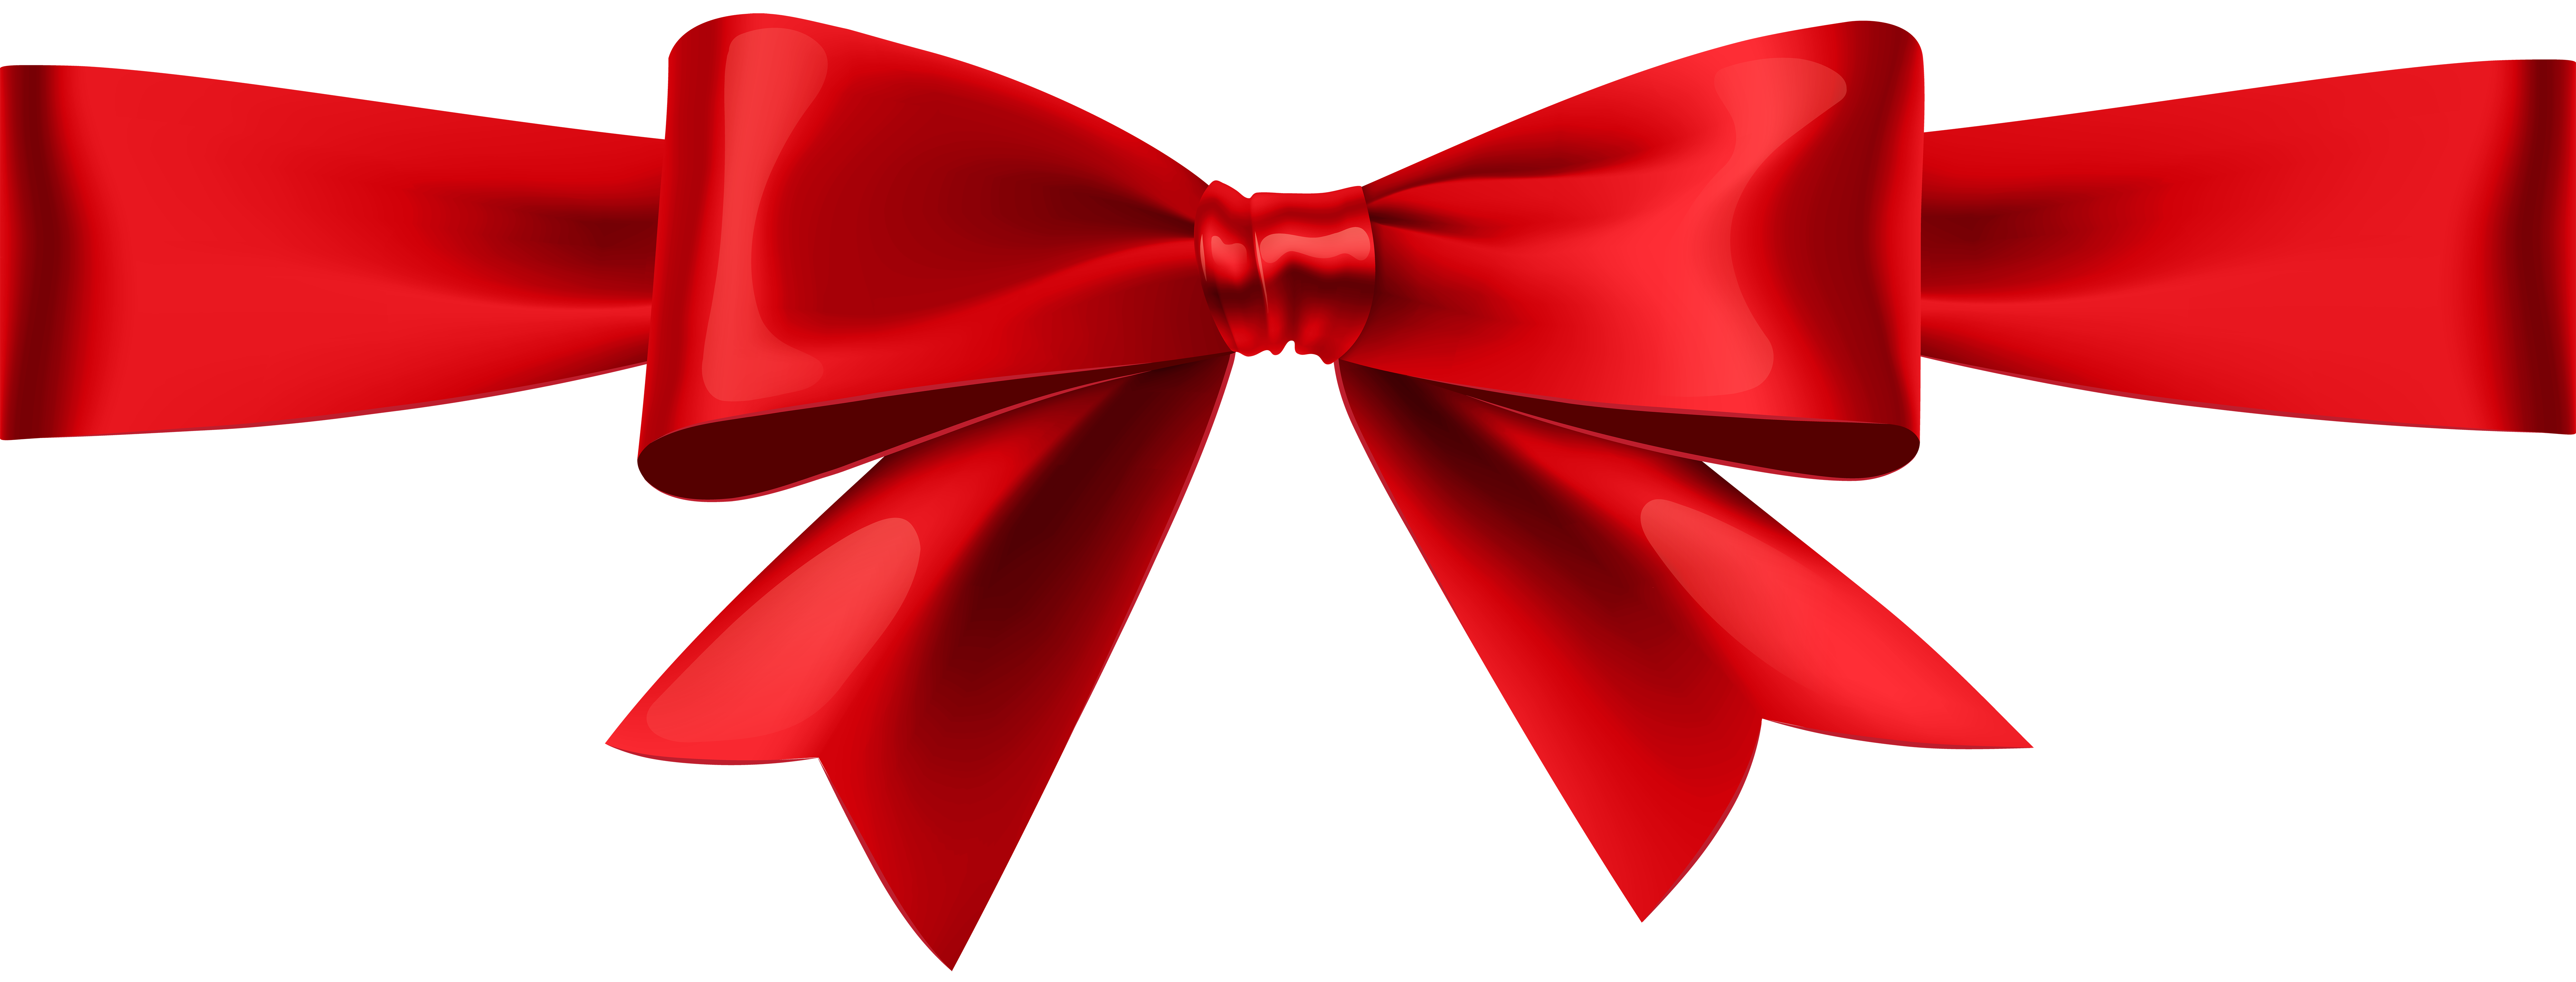 Red bow image clipart images gallery for free download.